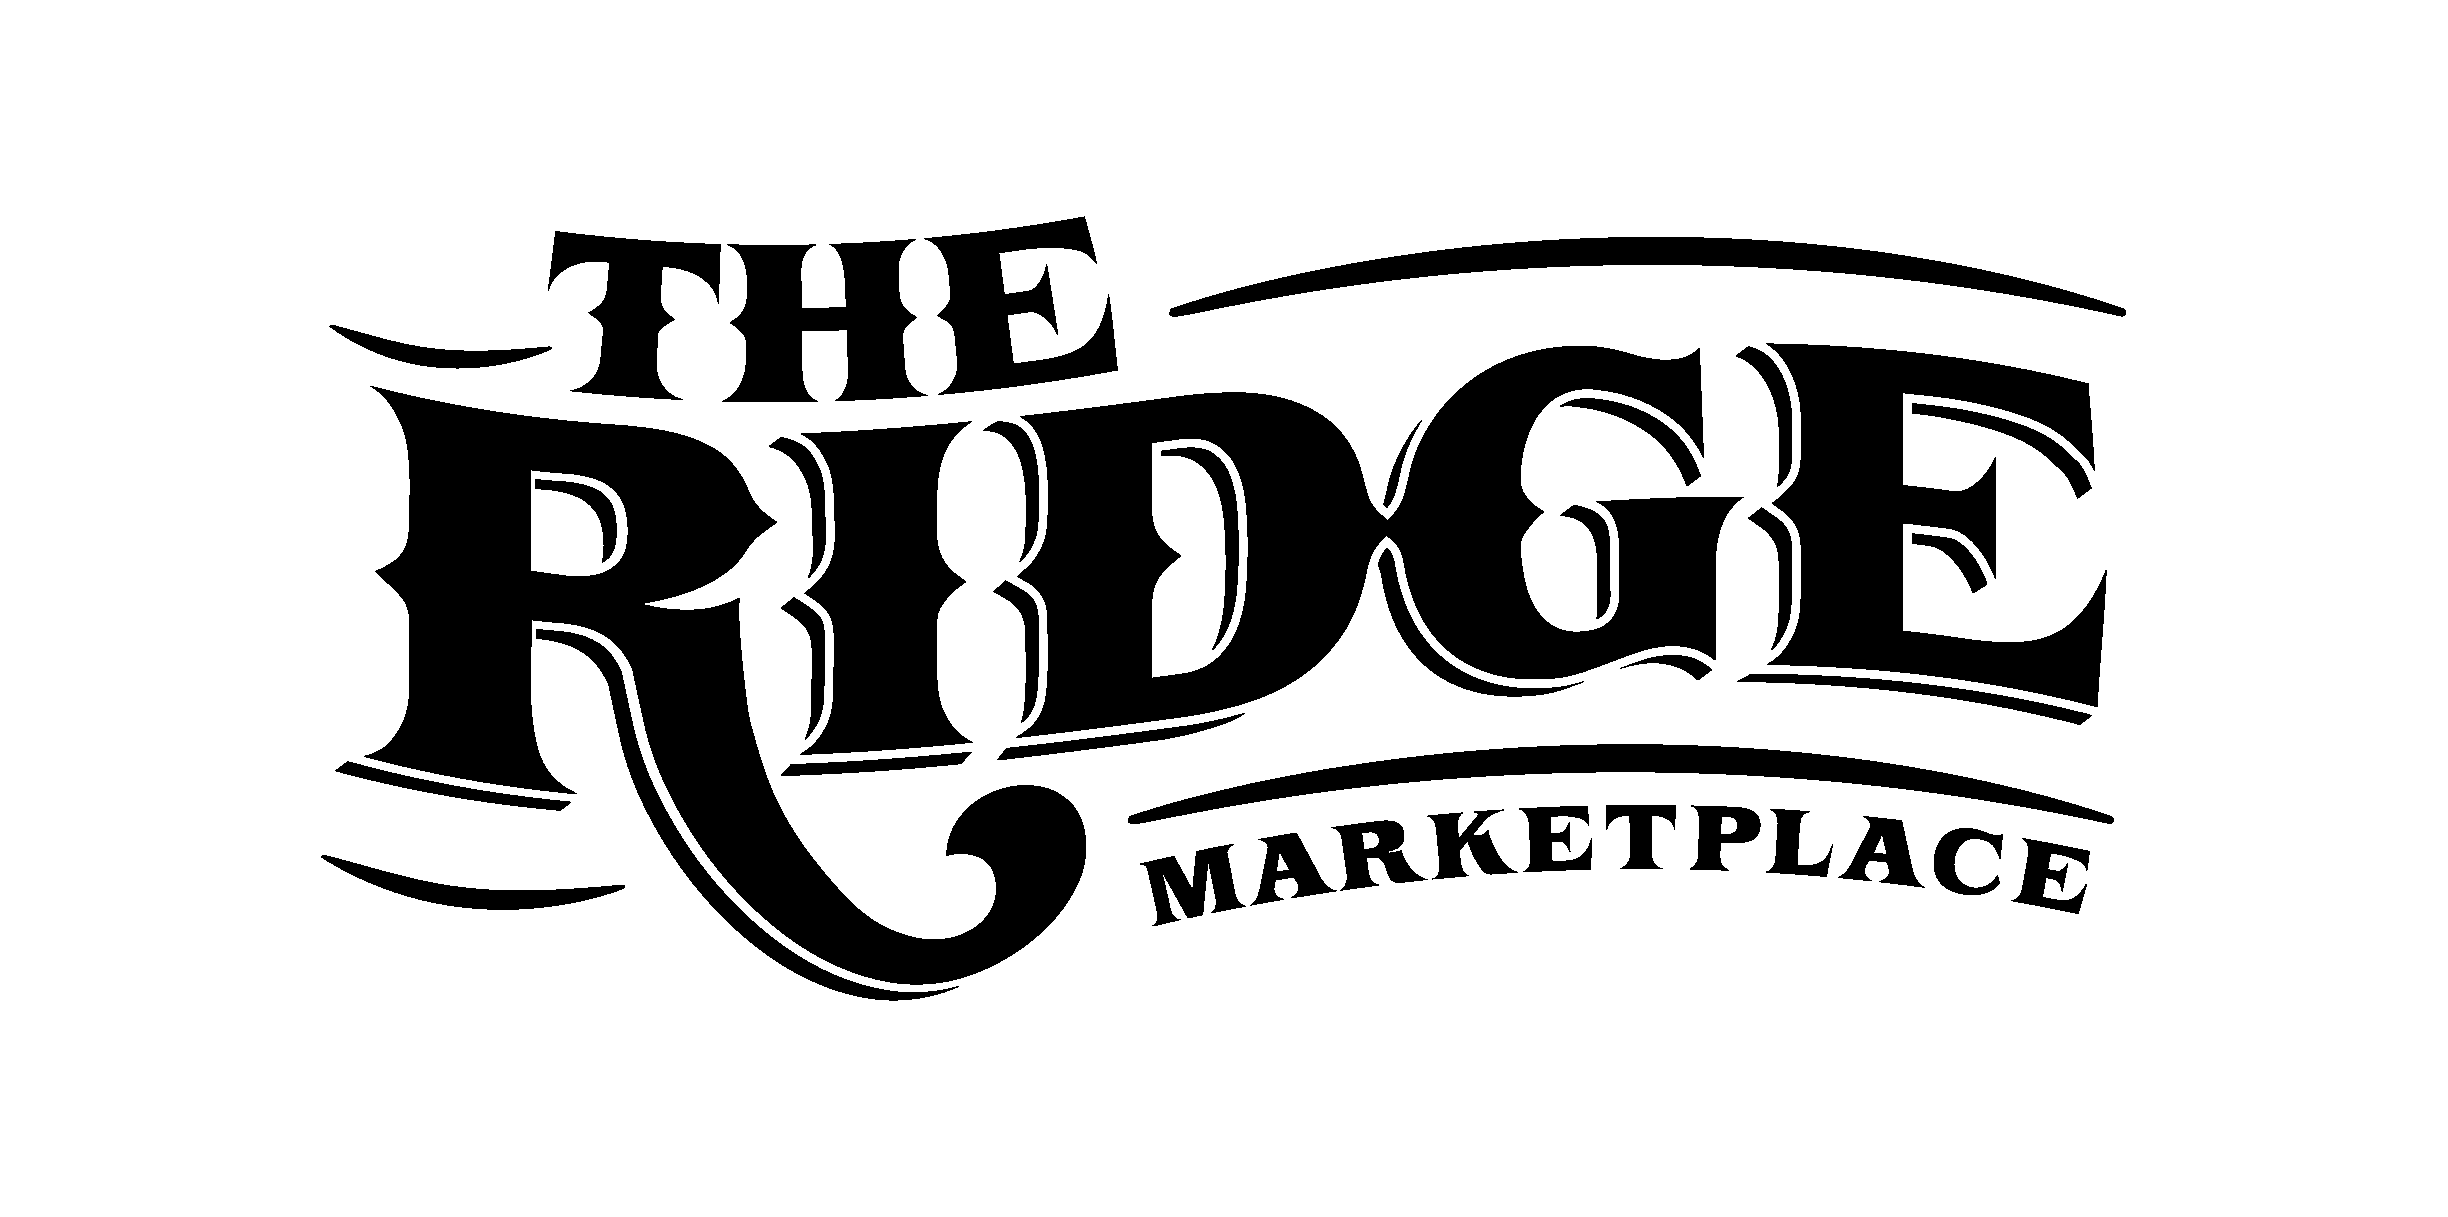 The Ridge Marketplace